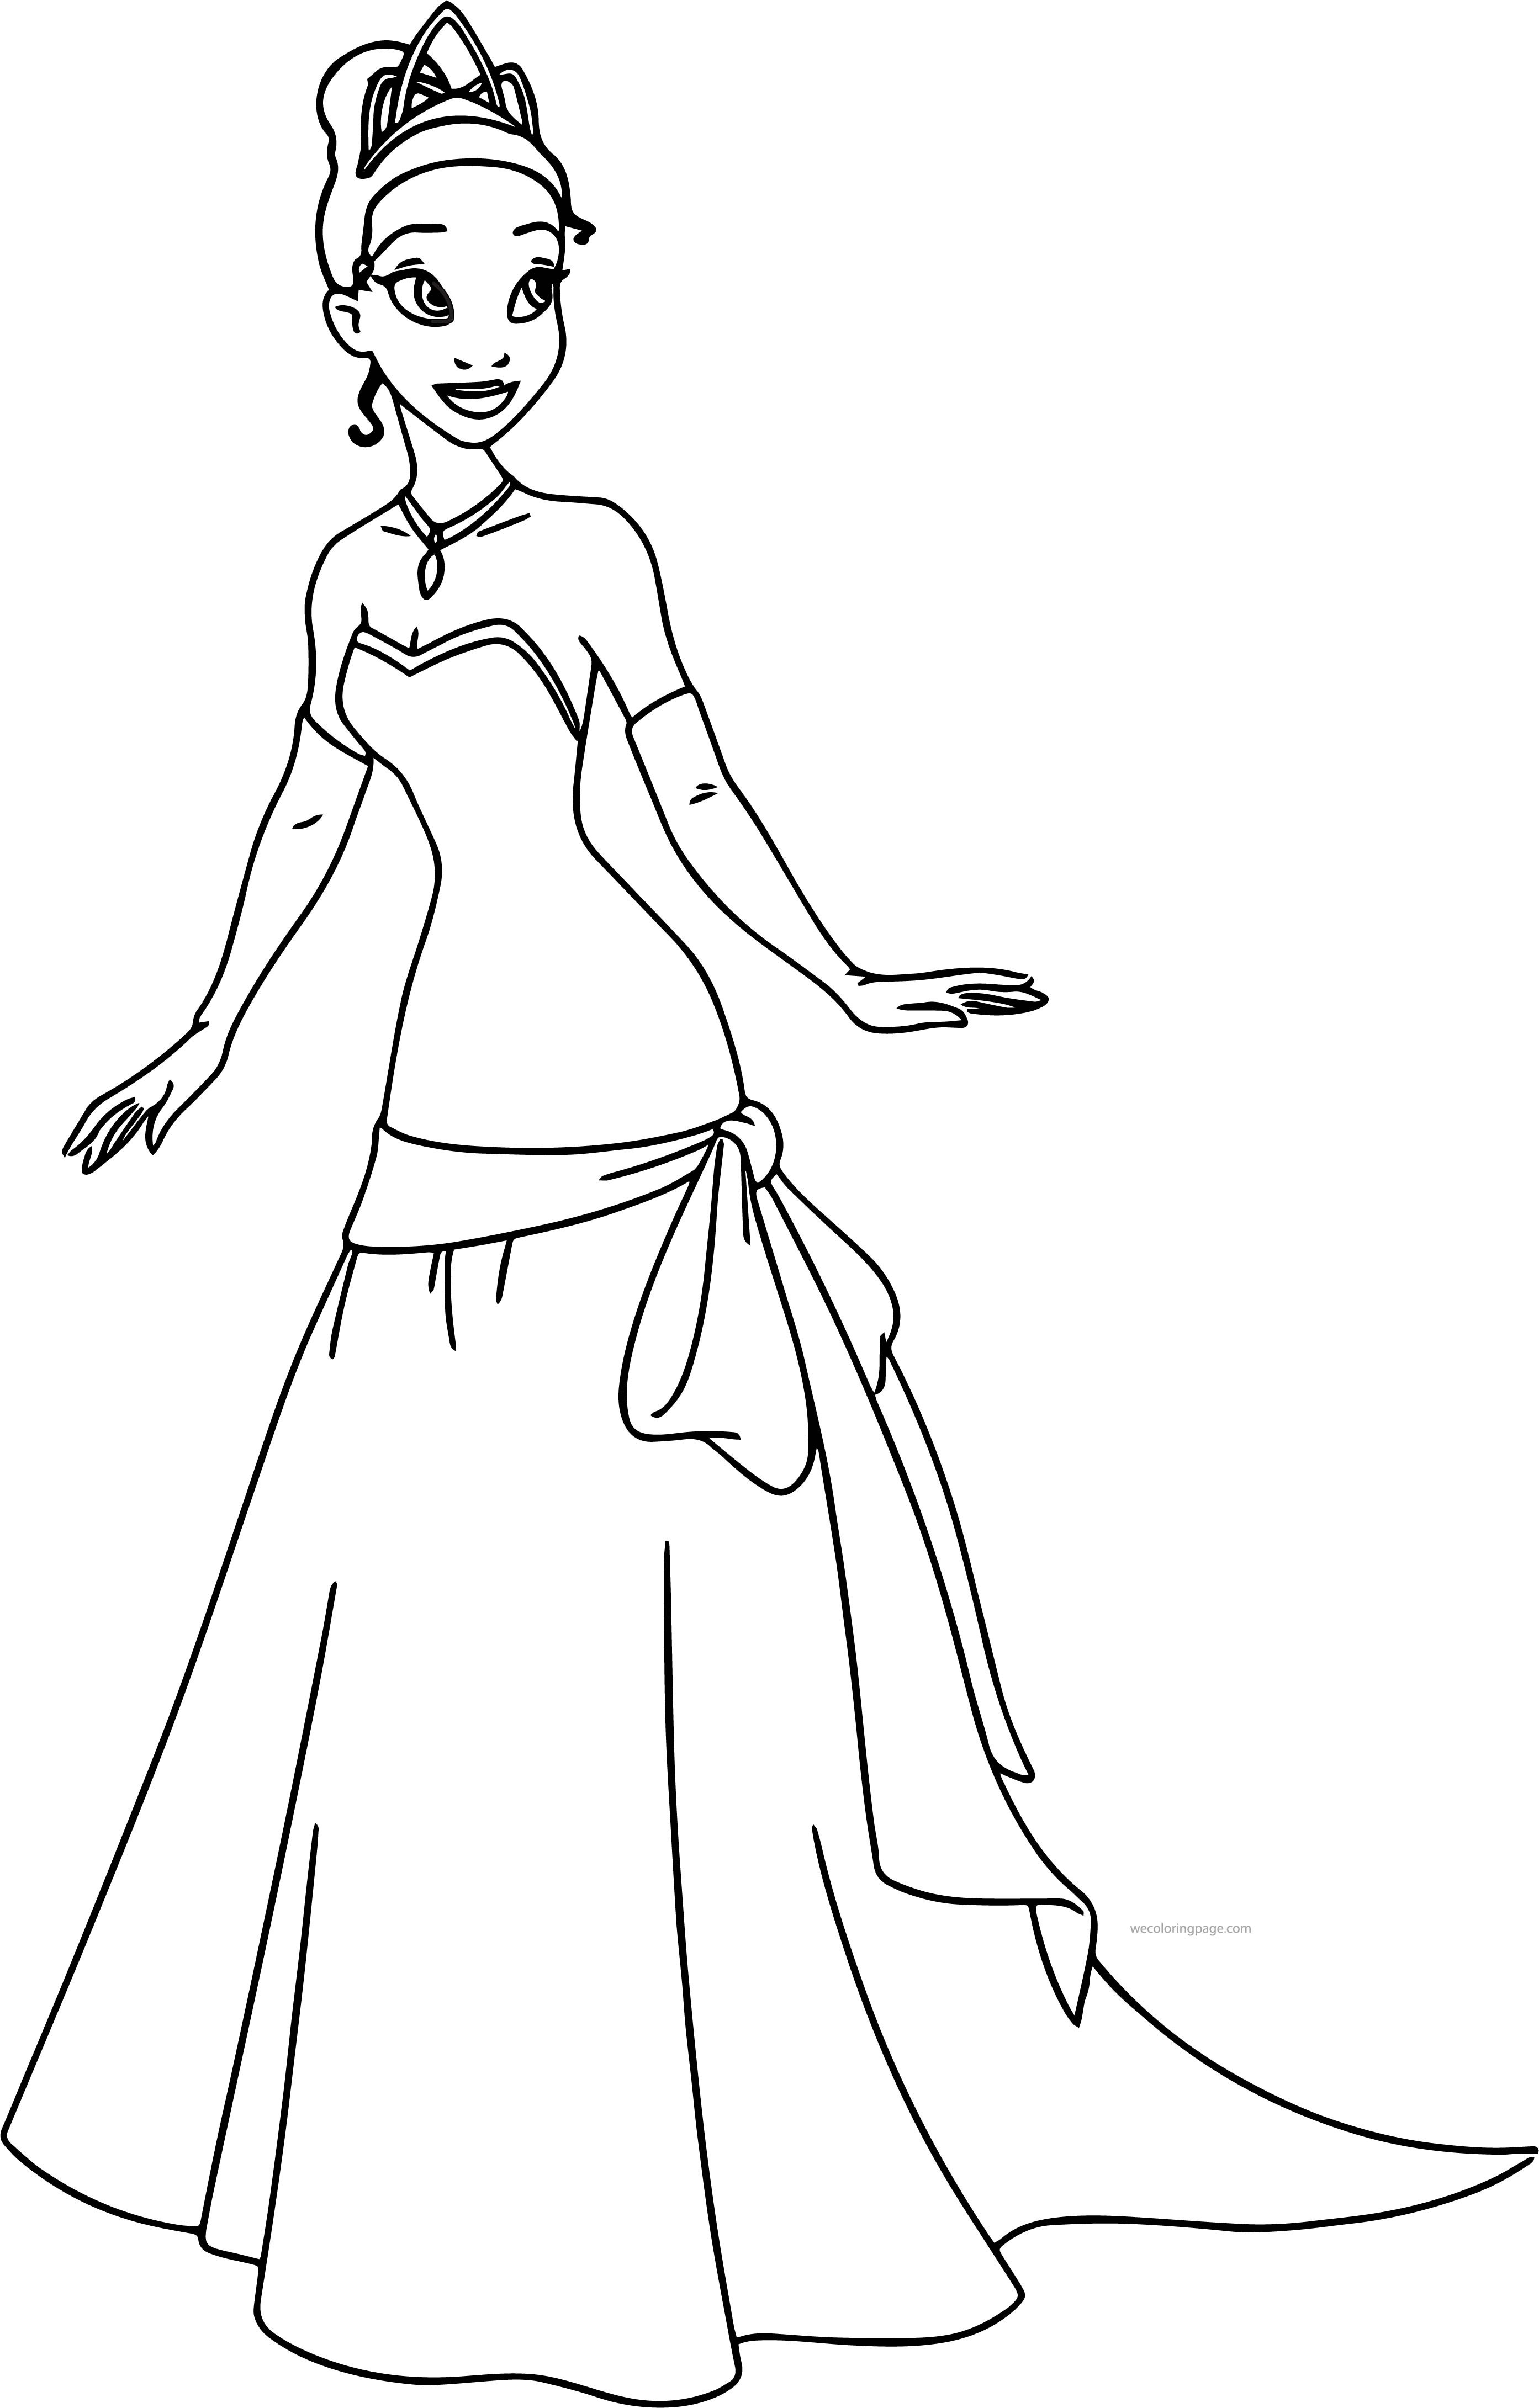 Best ideas about Tiana Printable Coloring Pages . Save or Pin Disney The Princess And The Frog Perfect Tiana Dress Now.